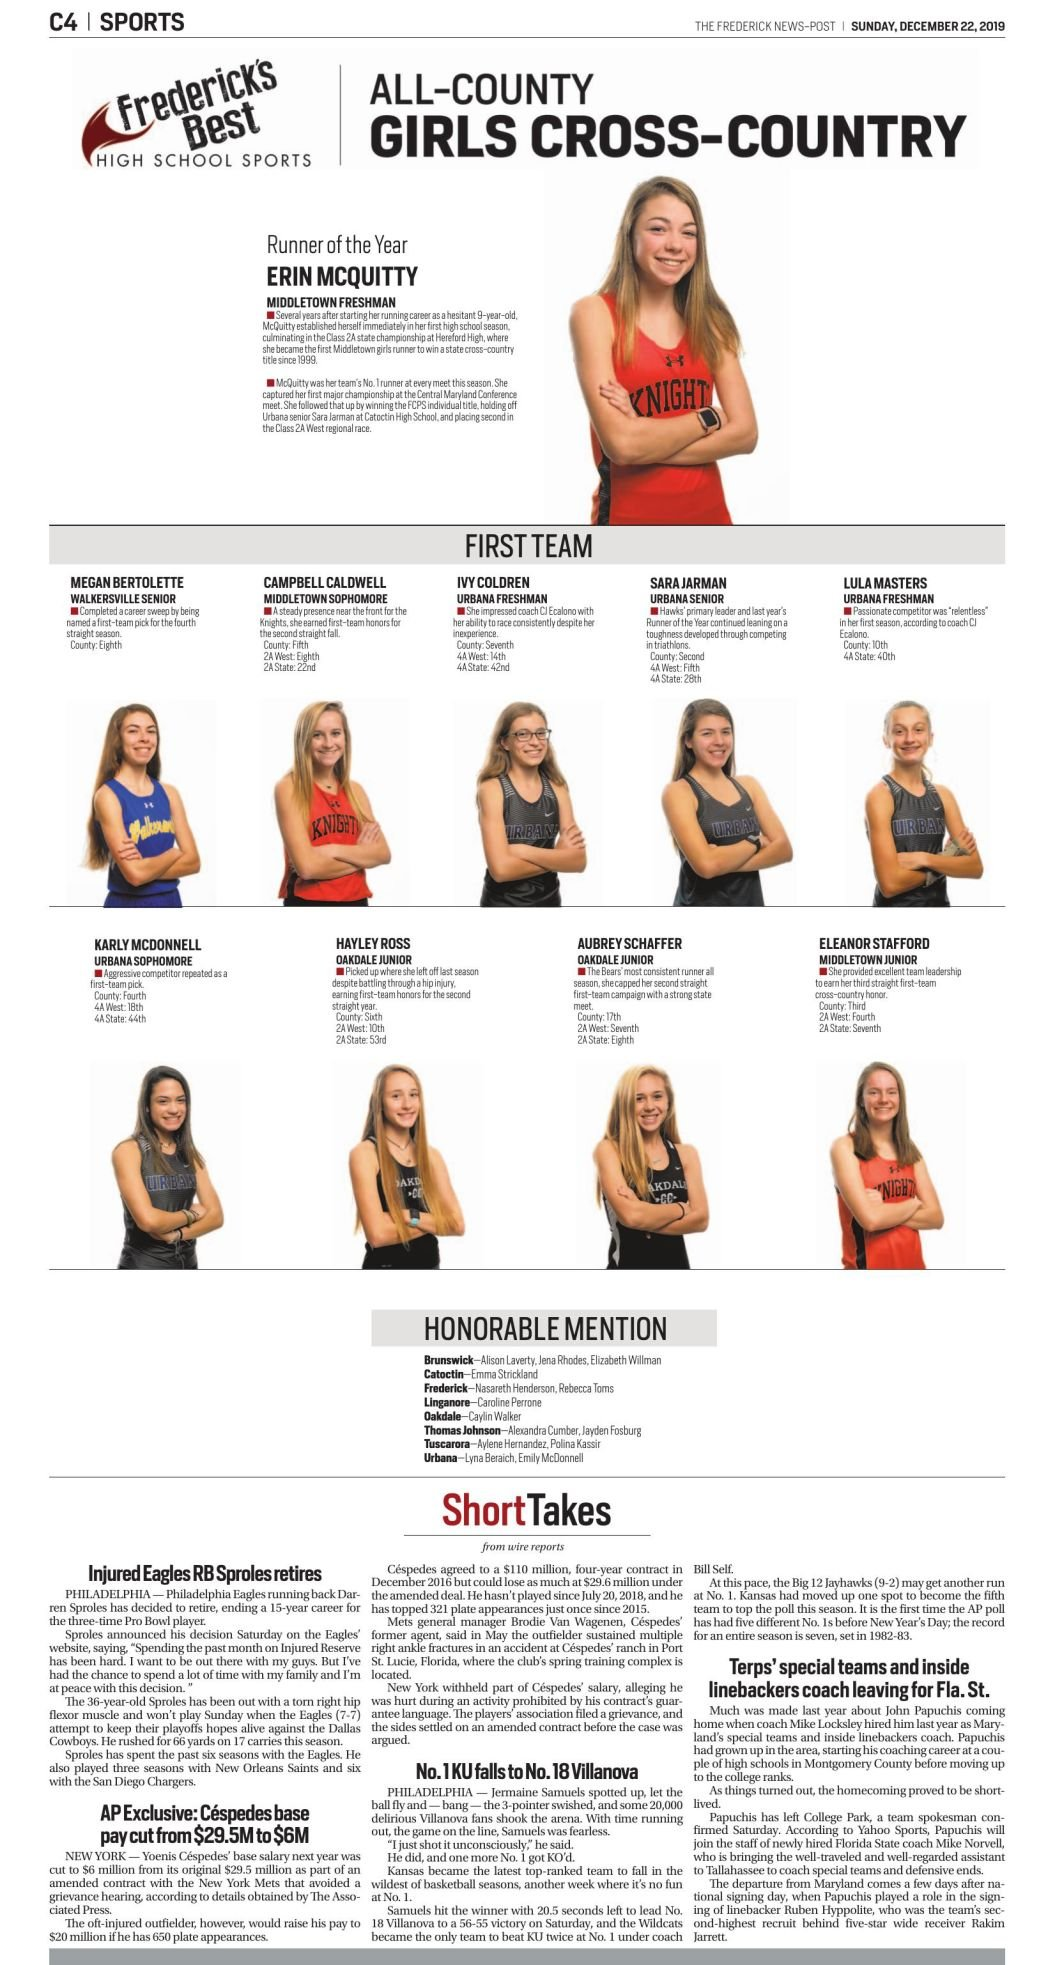 2019 All-County Girls Cross-Country